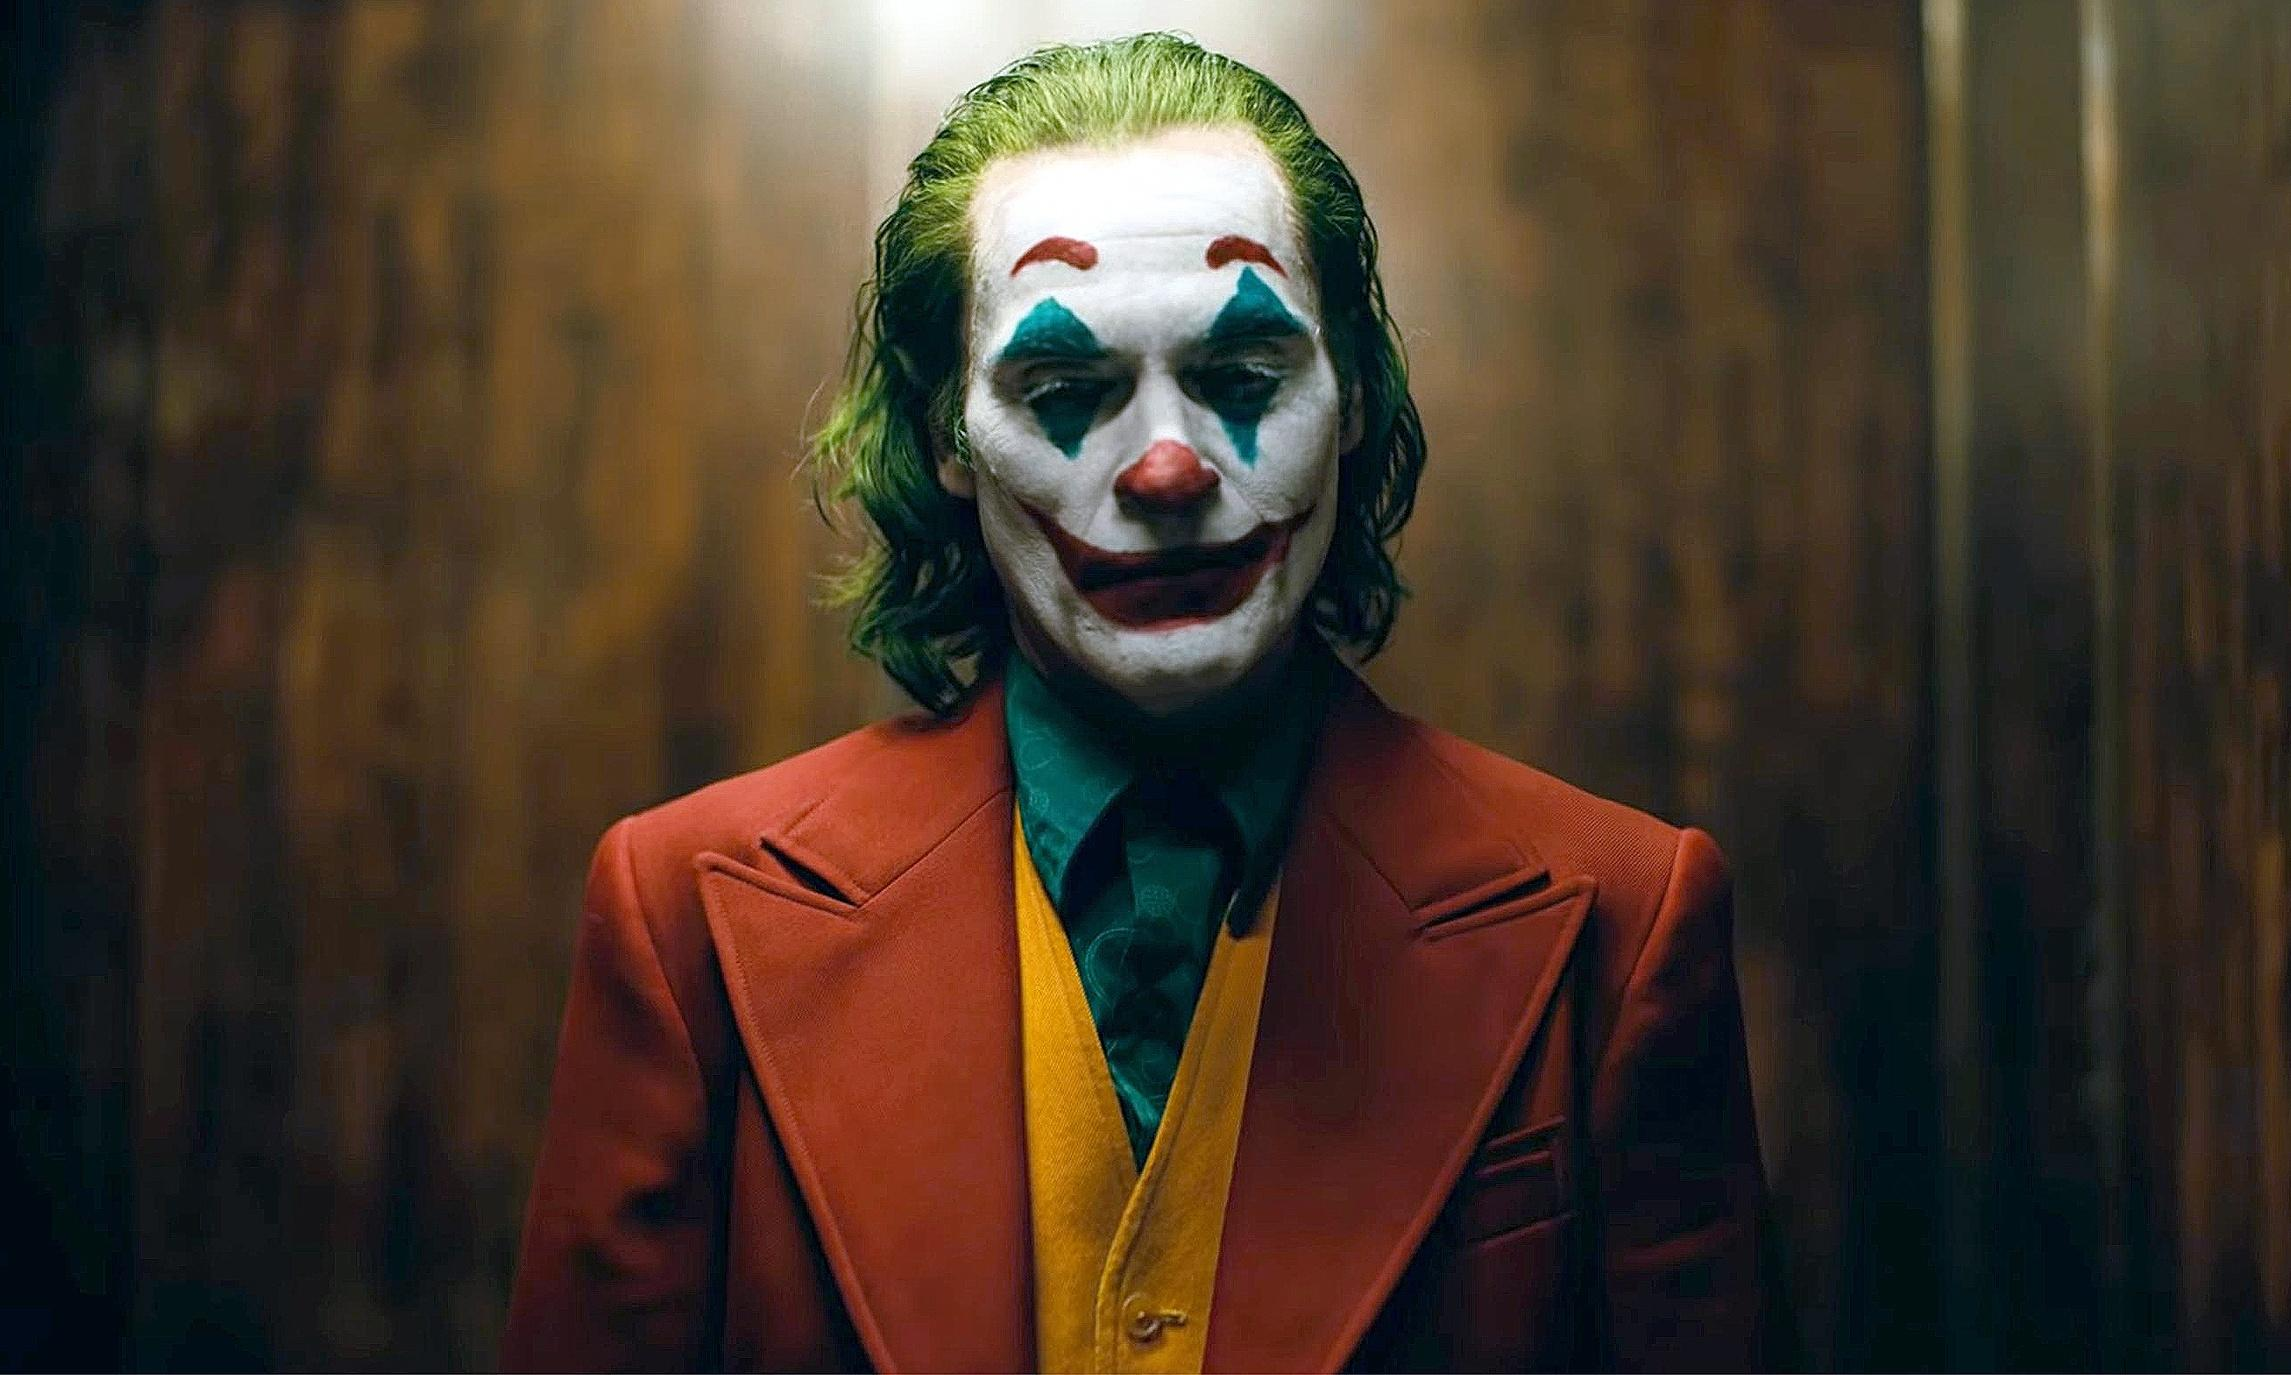 Joker strives to capture our cultural moment – but it's smug and banal at heart